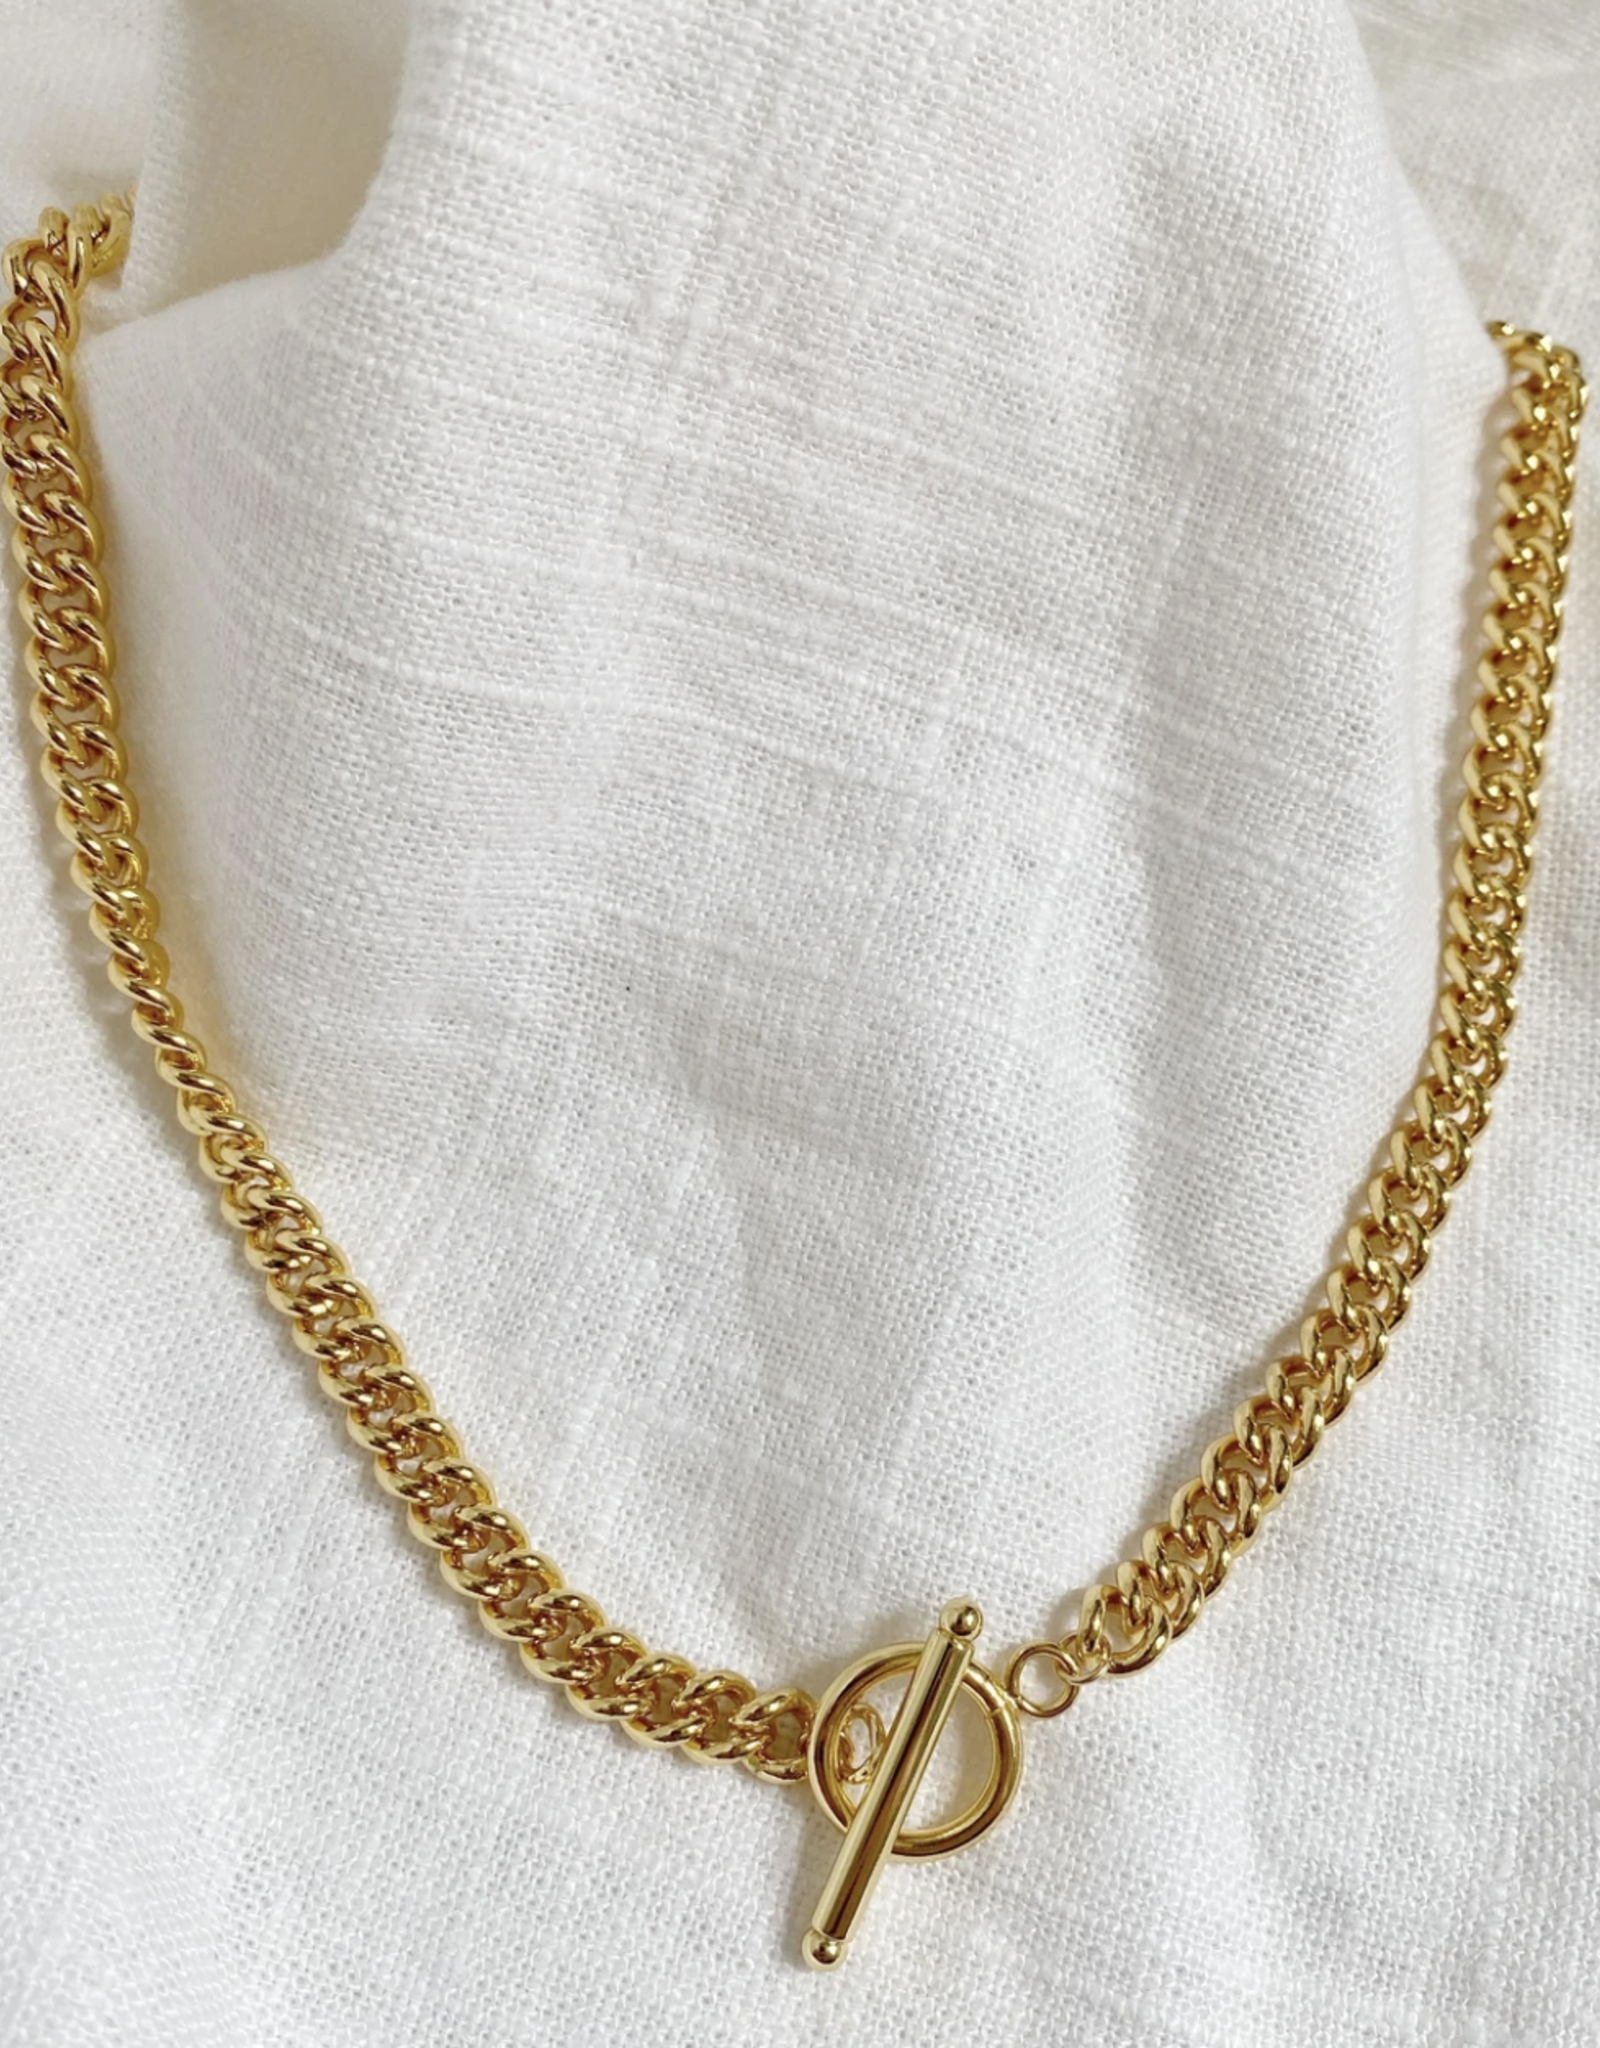 Bofemme Bofemme Thick Cuban Chain Necklace